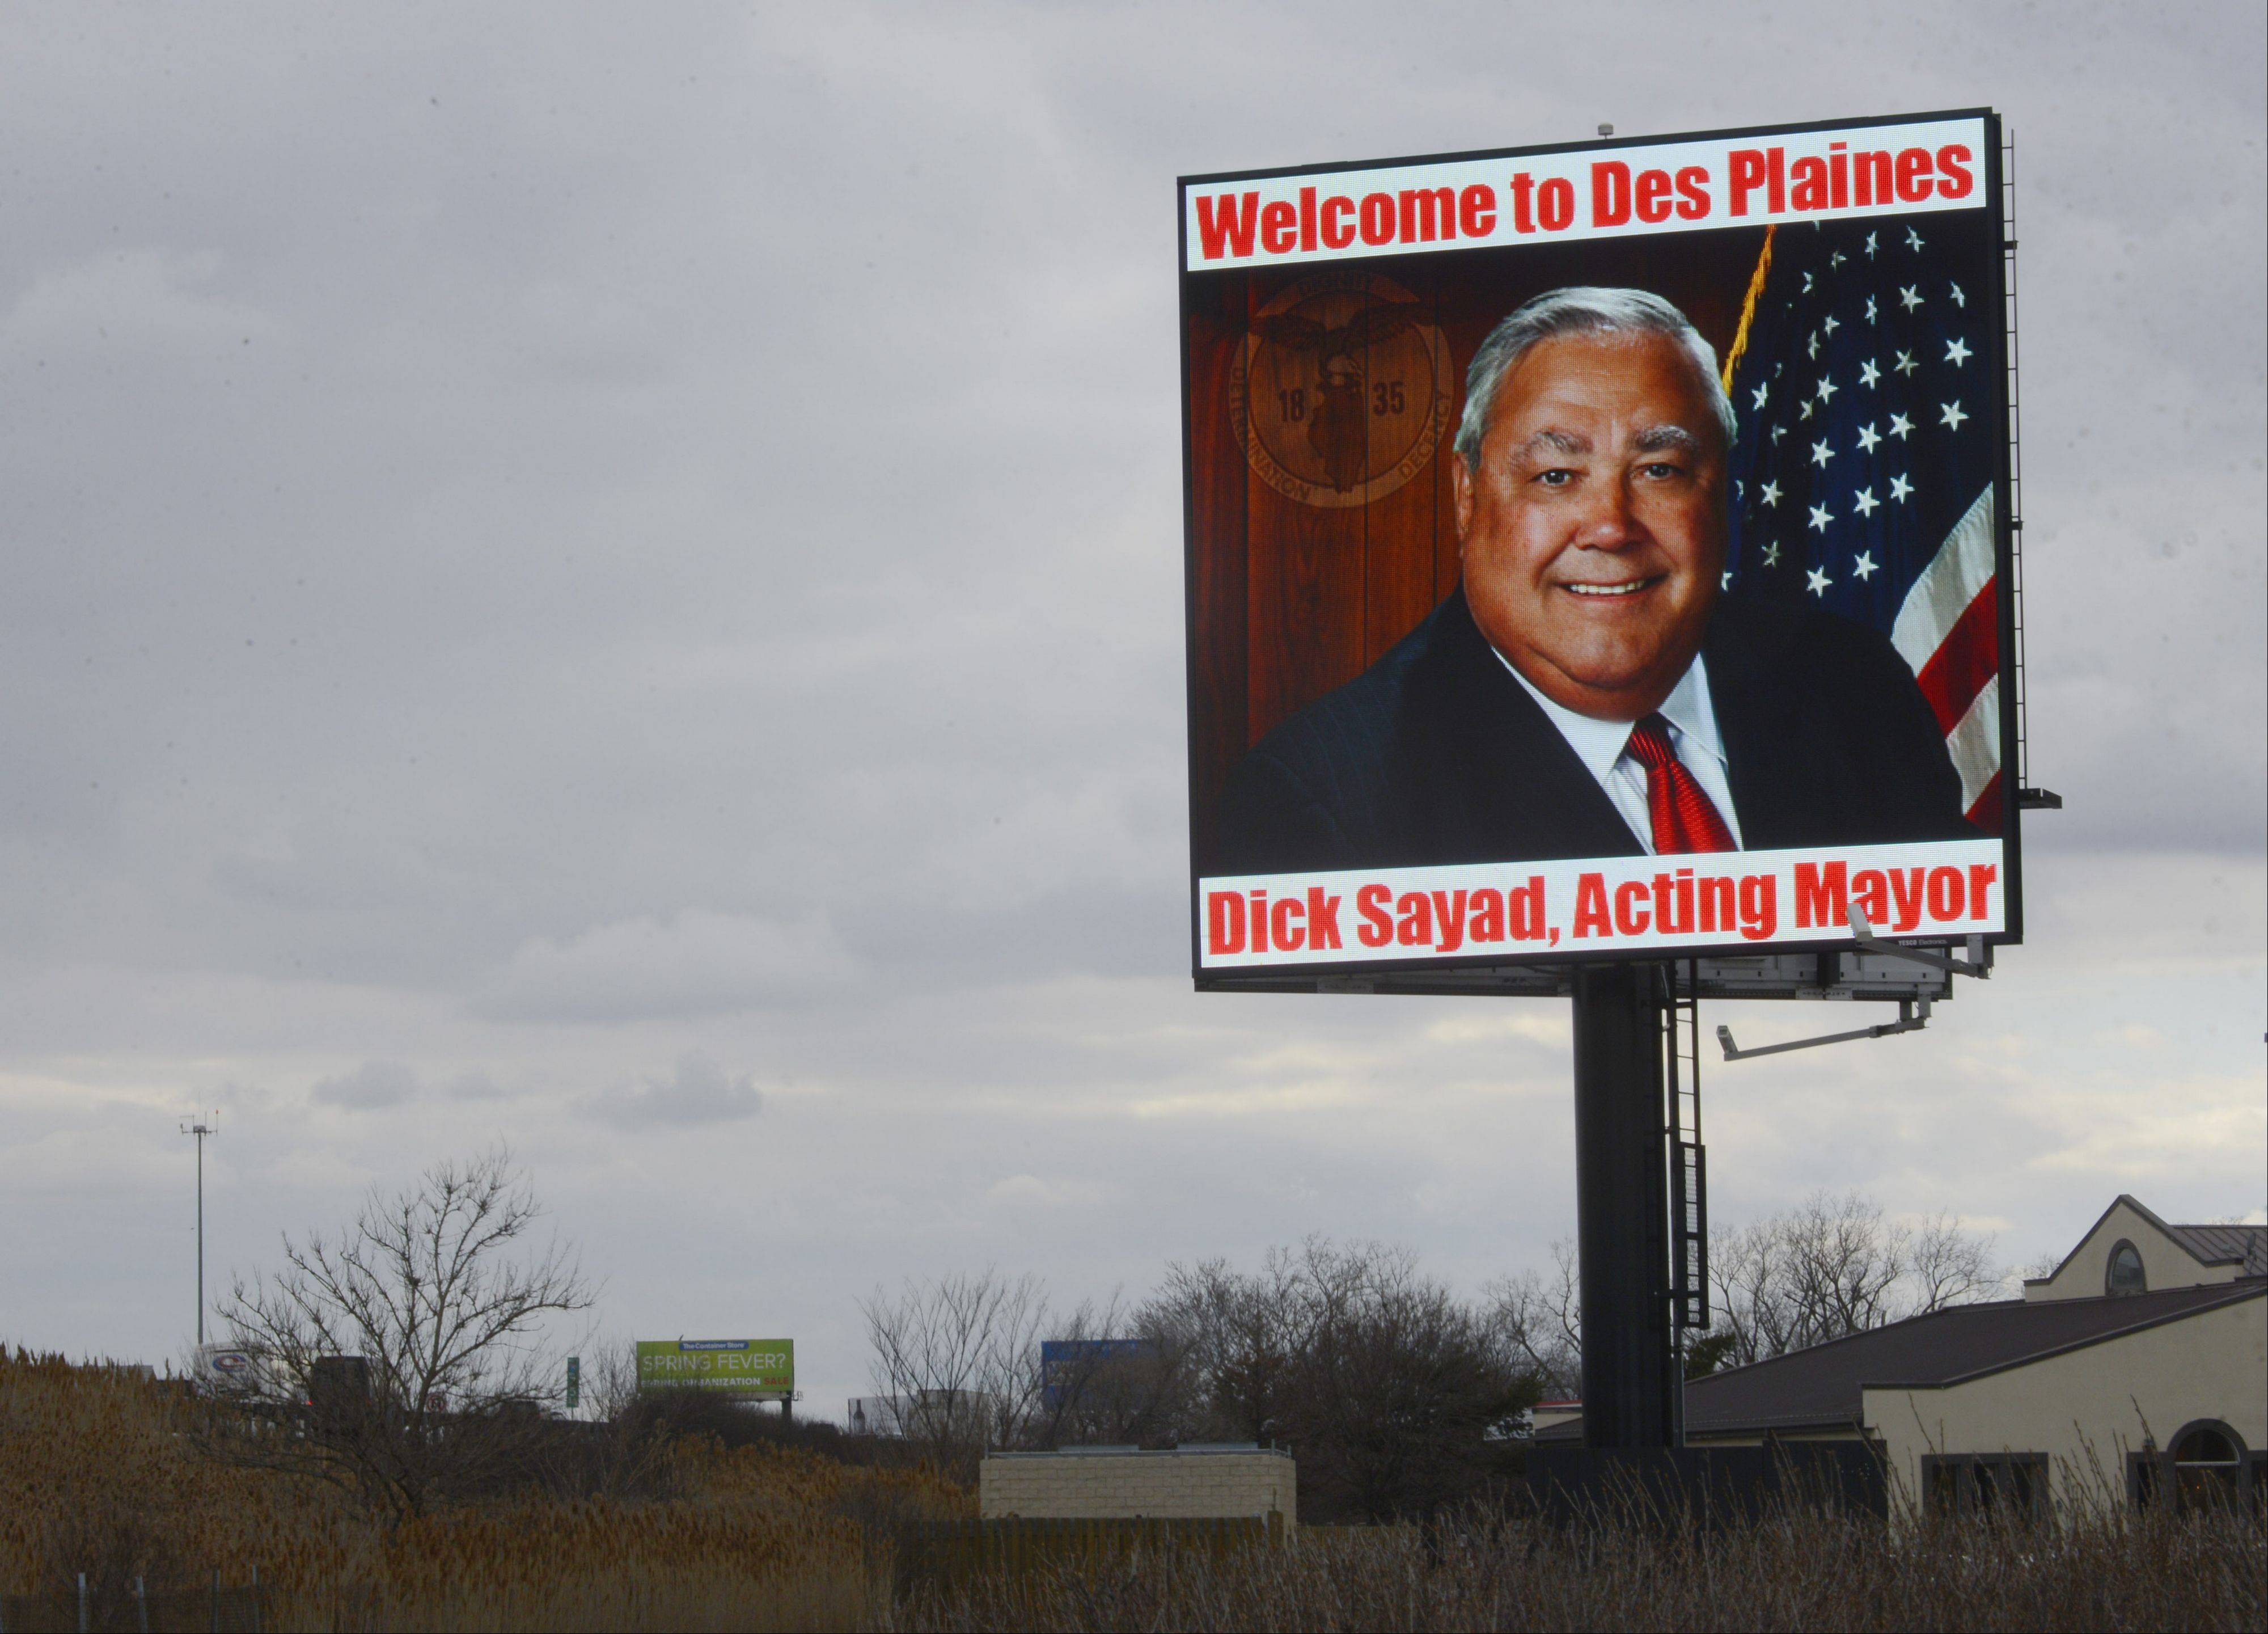 JOE LEWNARD/jlewnard@dailyherald.com A lighted billboard which can be seen by motorists traveling on the westbound Jane Addams Tollway includes a message from acting Des Plaines Mayor Dick Sayad welcoming them to Des Plaines. Sayad holds the job for seven weeks.